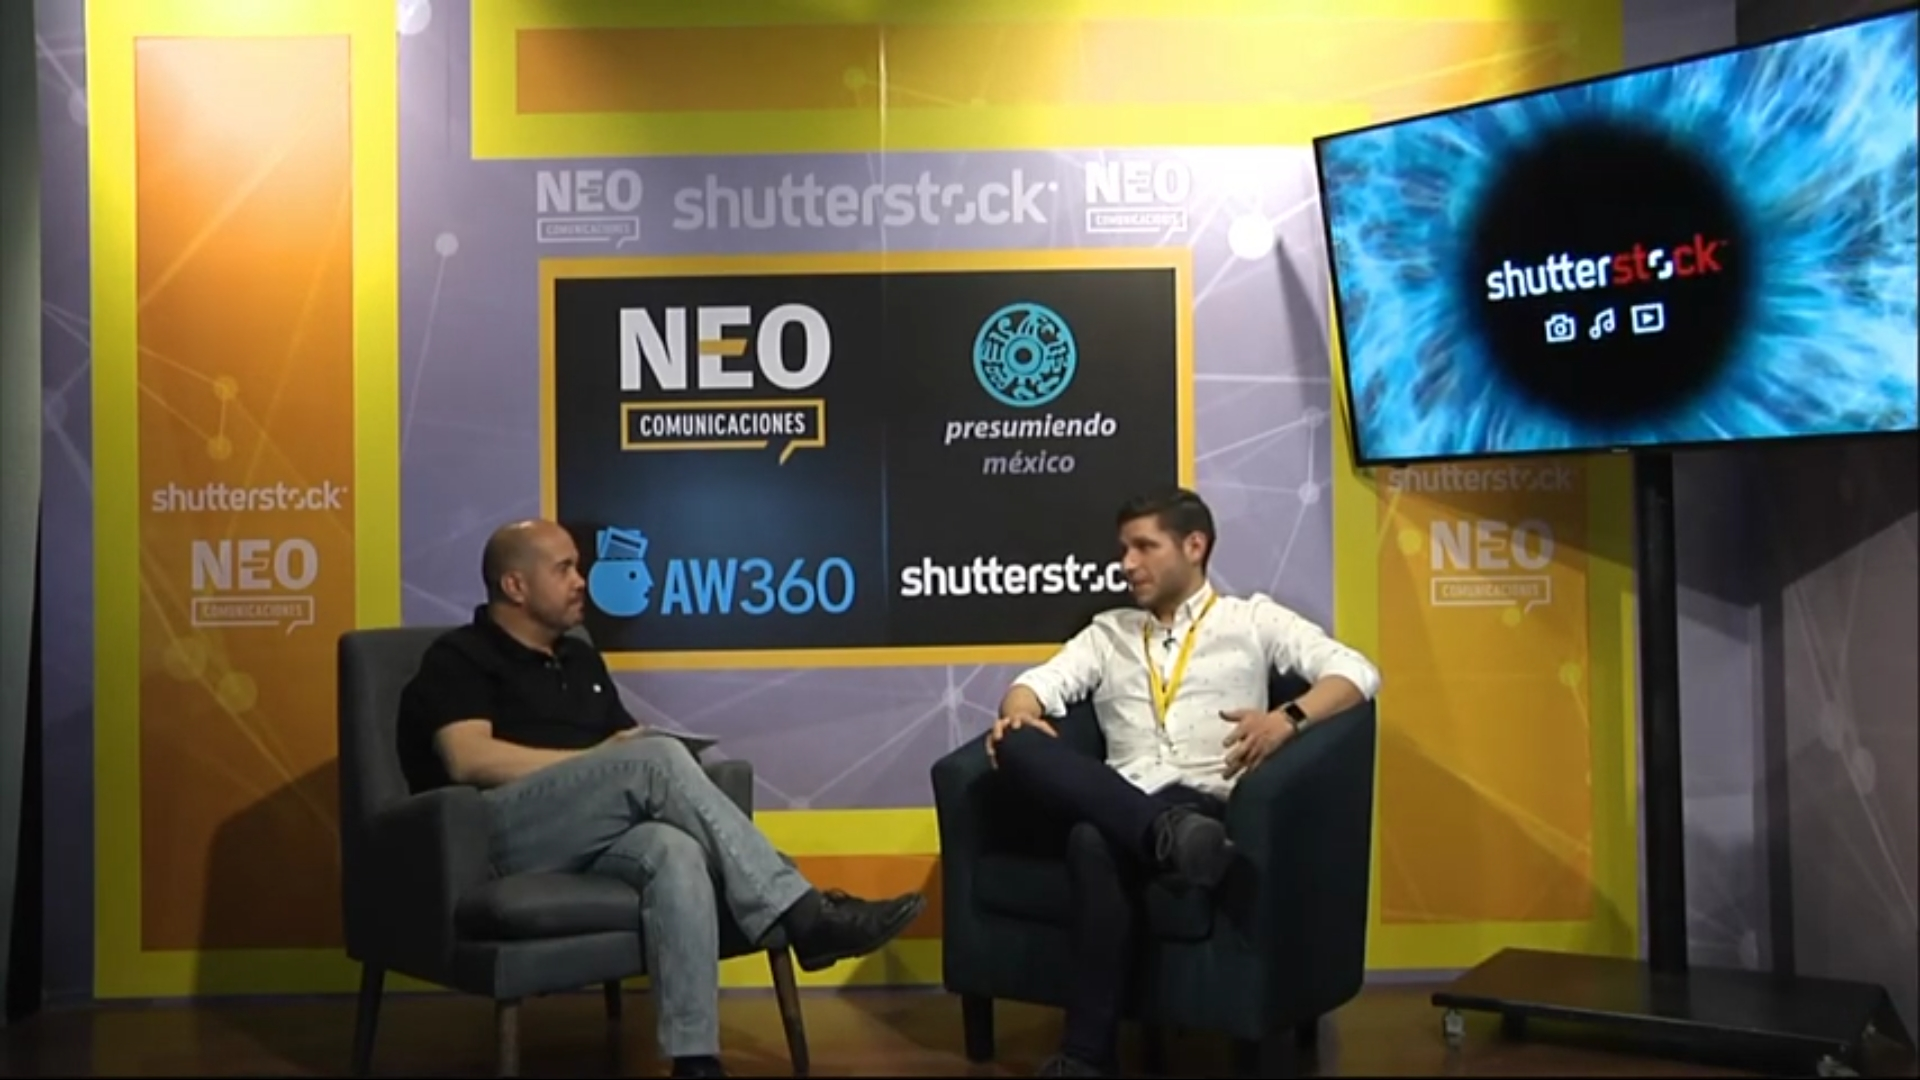 Aldo Tabe en entrevista con NEO Marketing Talk en Advertising Week 2020